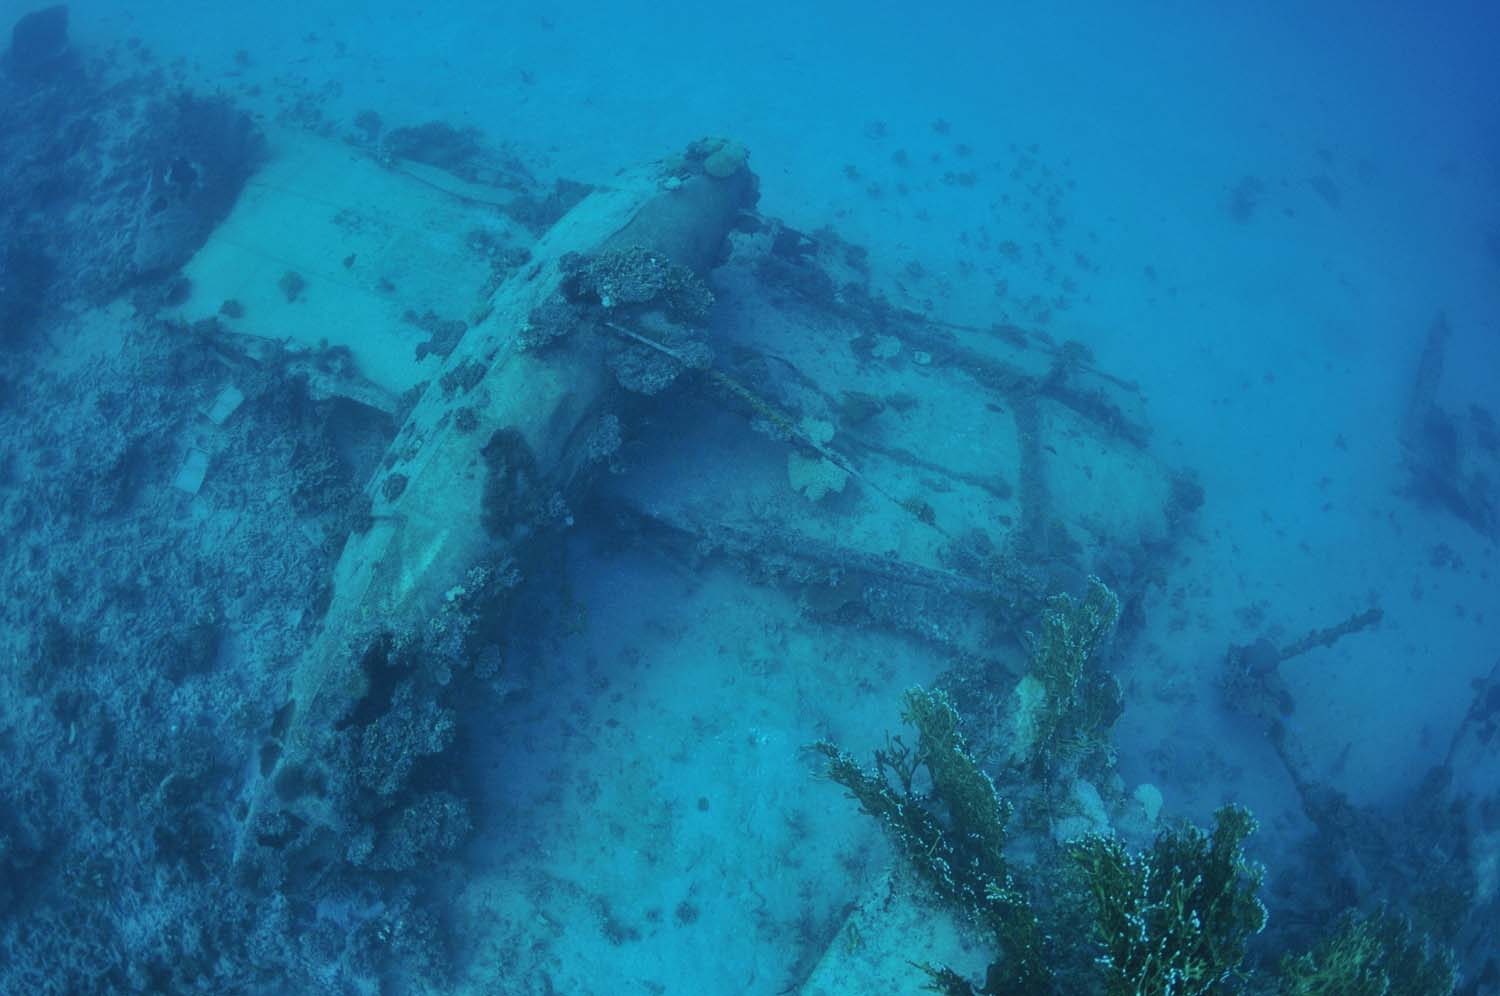 Large parts of this majestic WW2 floatplane can be seen, as the divers descend to the debris field